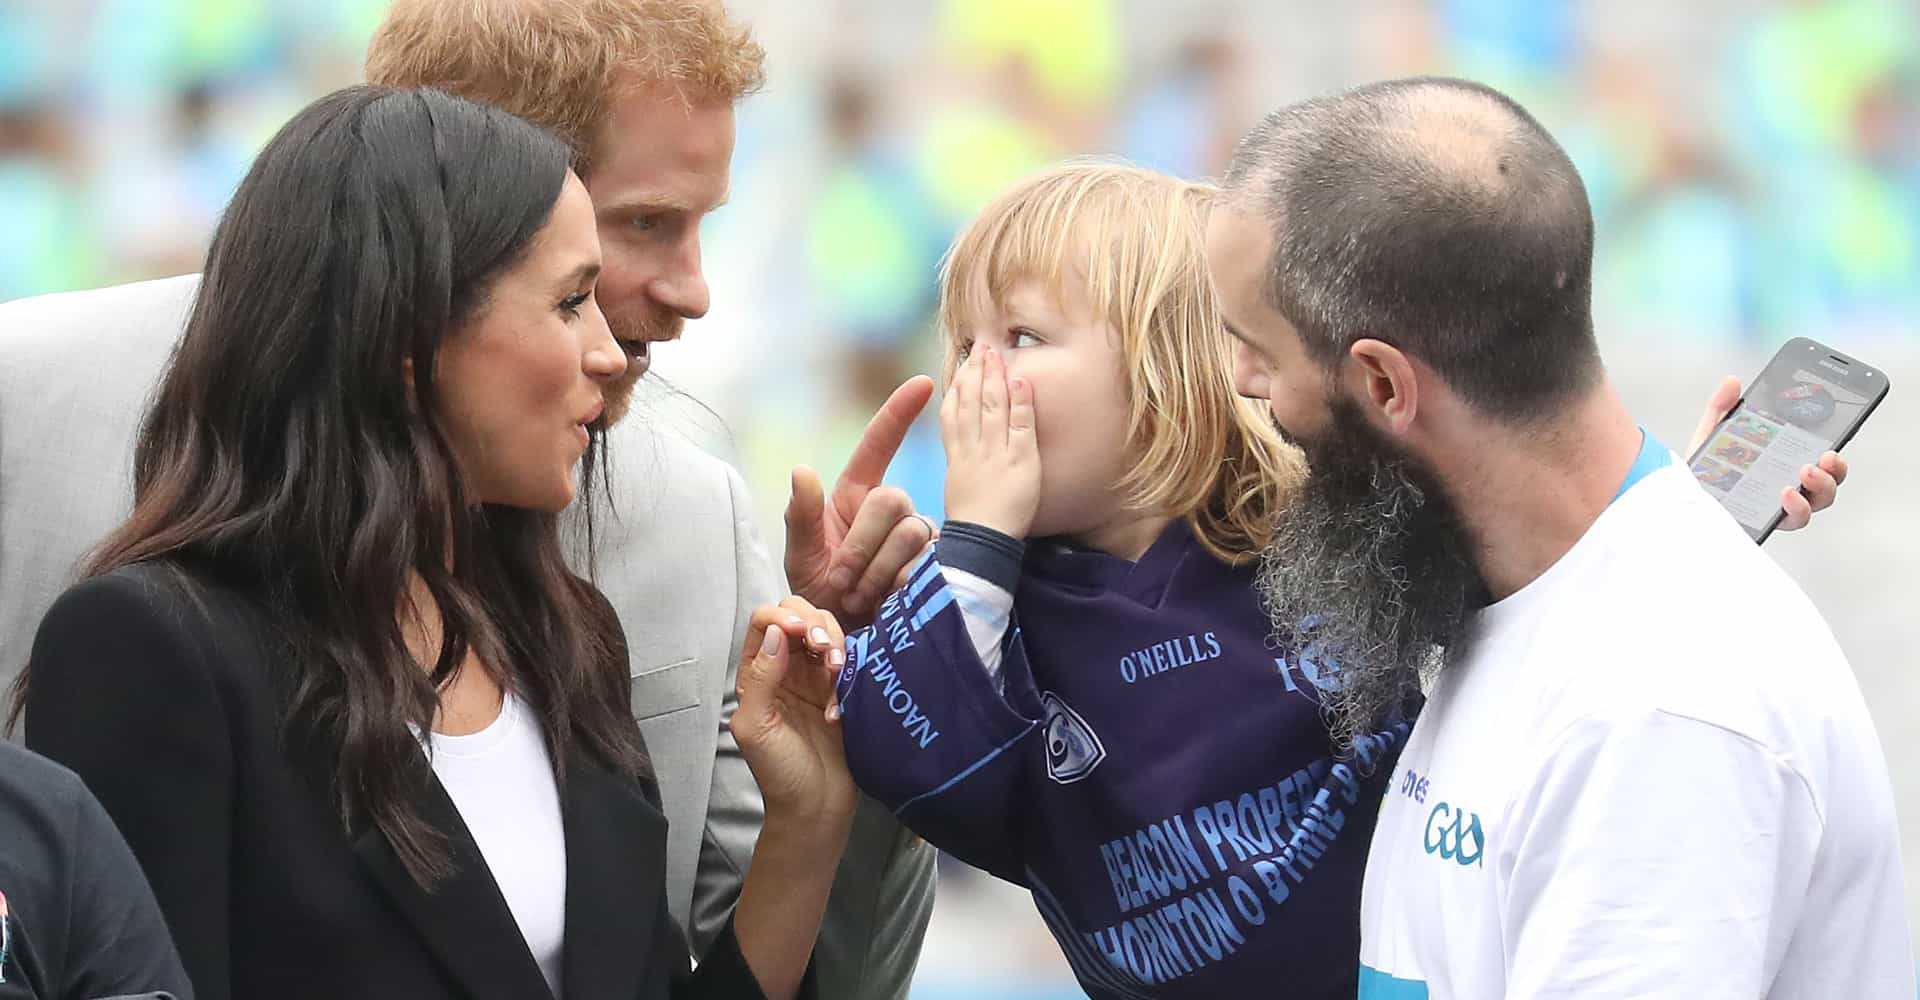 The reason Meghan and Harry won't have custody of their children